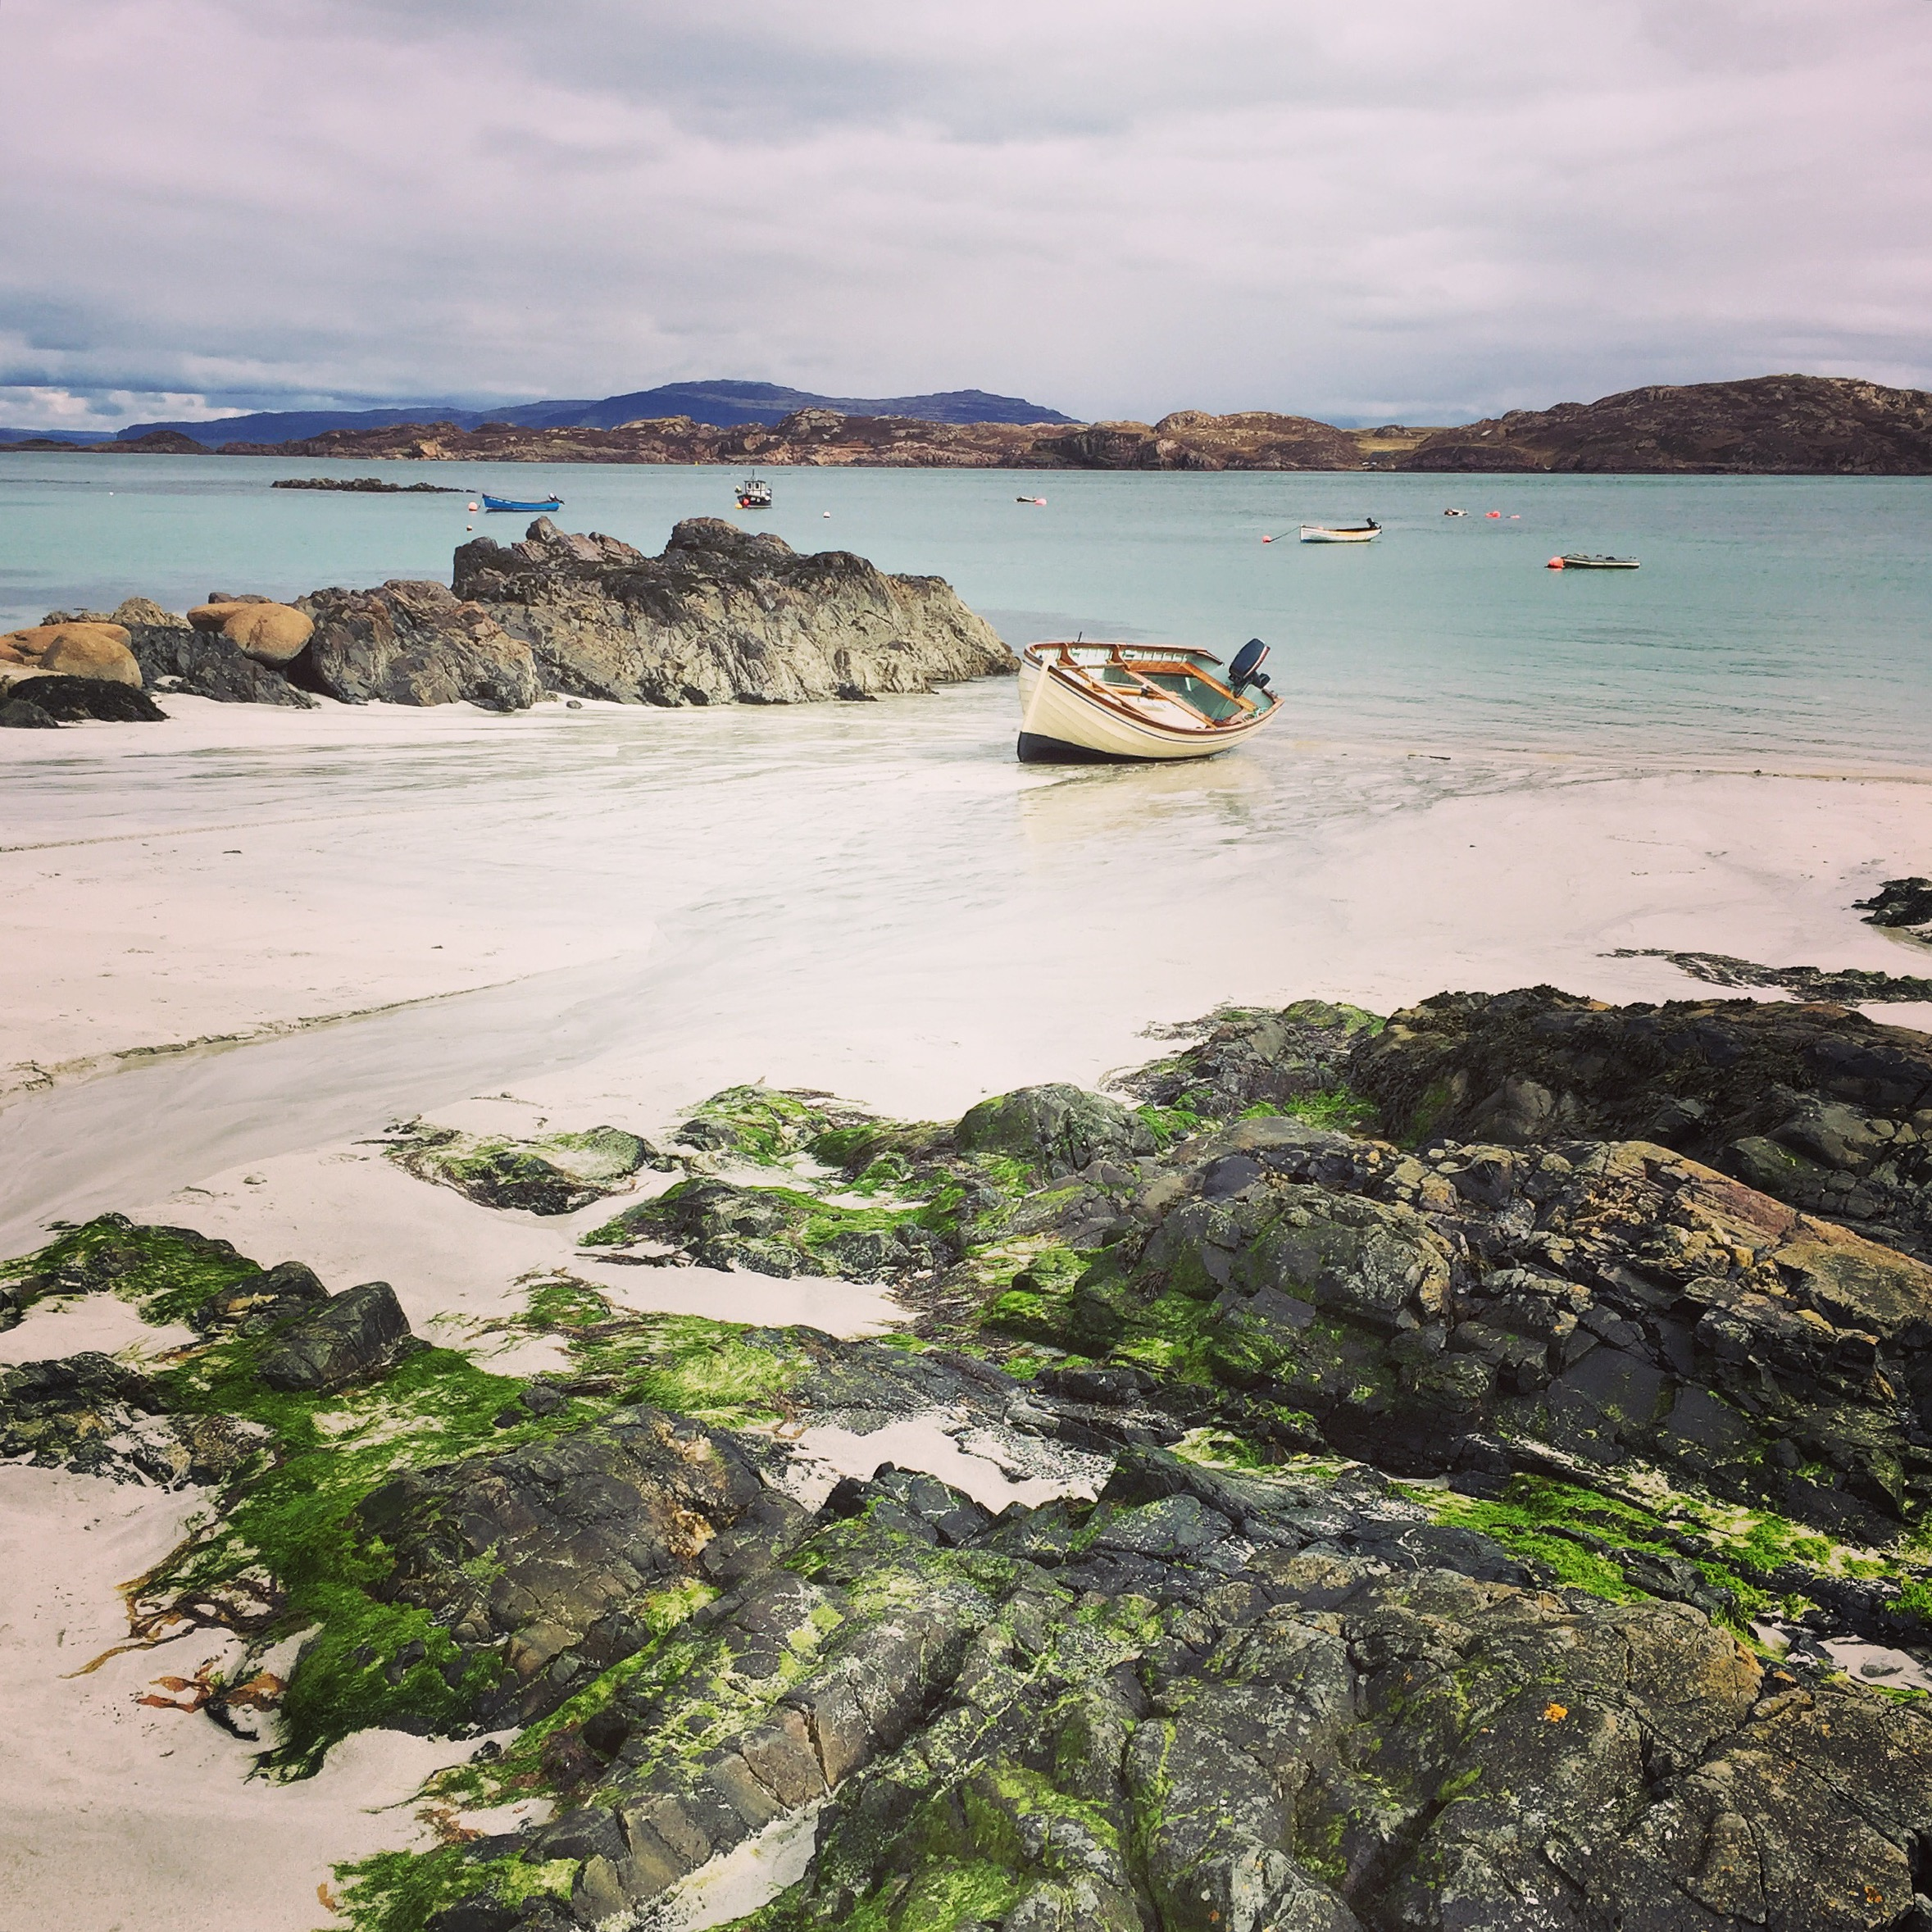 Iona, Scotland, iPhone 6  Here the rocks in the foreground provide another layer of visual interest, creating more depth in the scene.